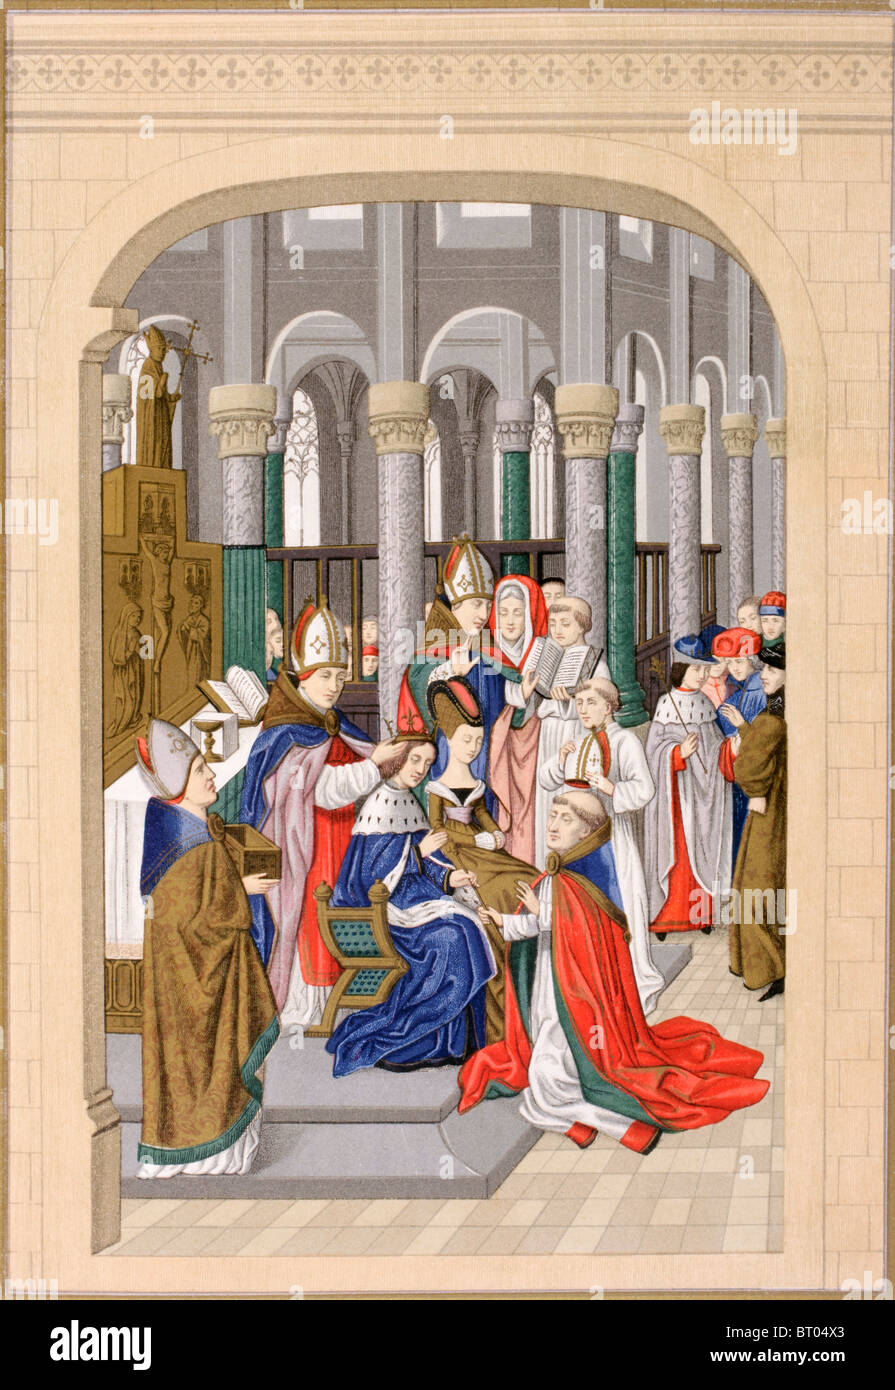 Coronation of Charles V, King of France, called The Wise, May 1364. - Stock Image